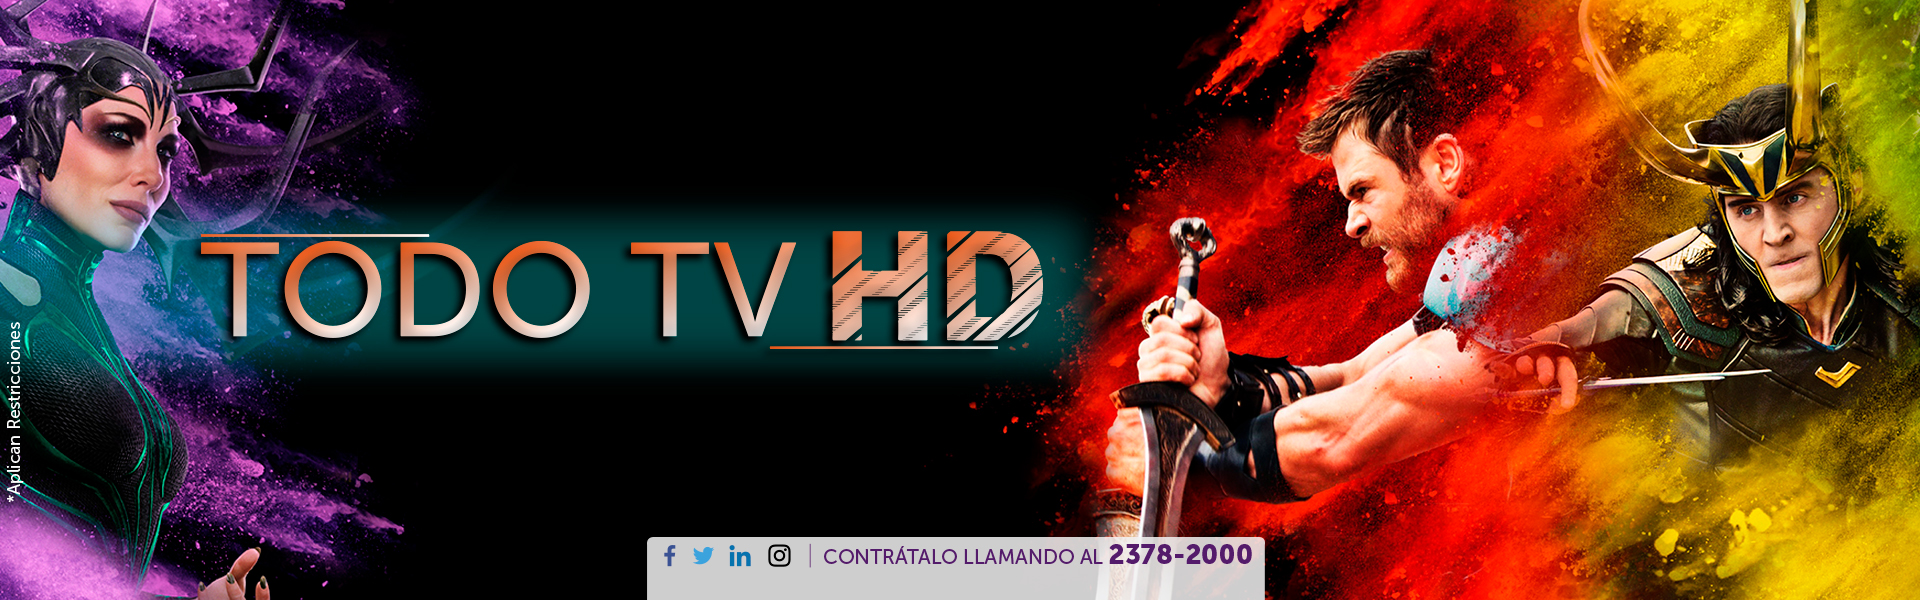 Todo TV HD